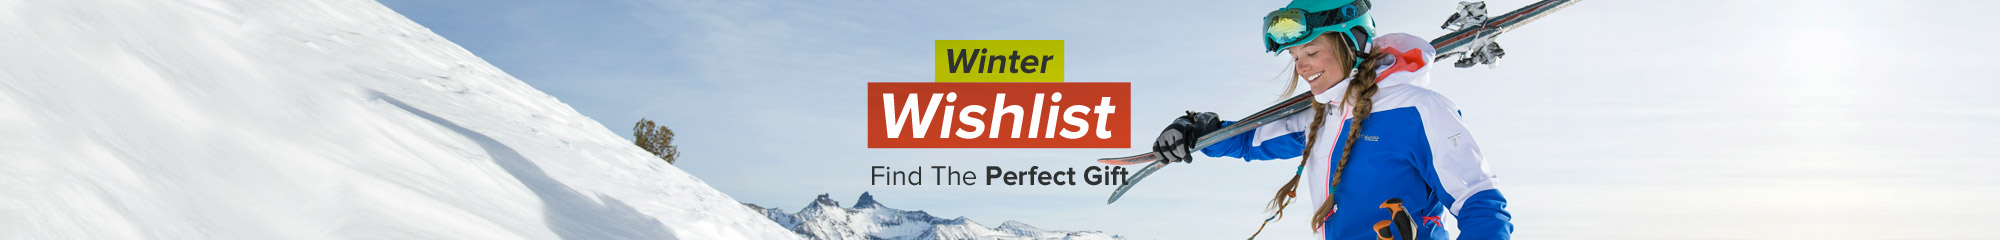 Winter Wishlist - Find the Perfect Gift